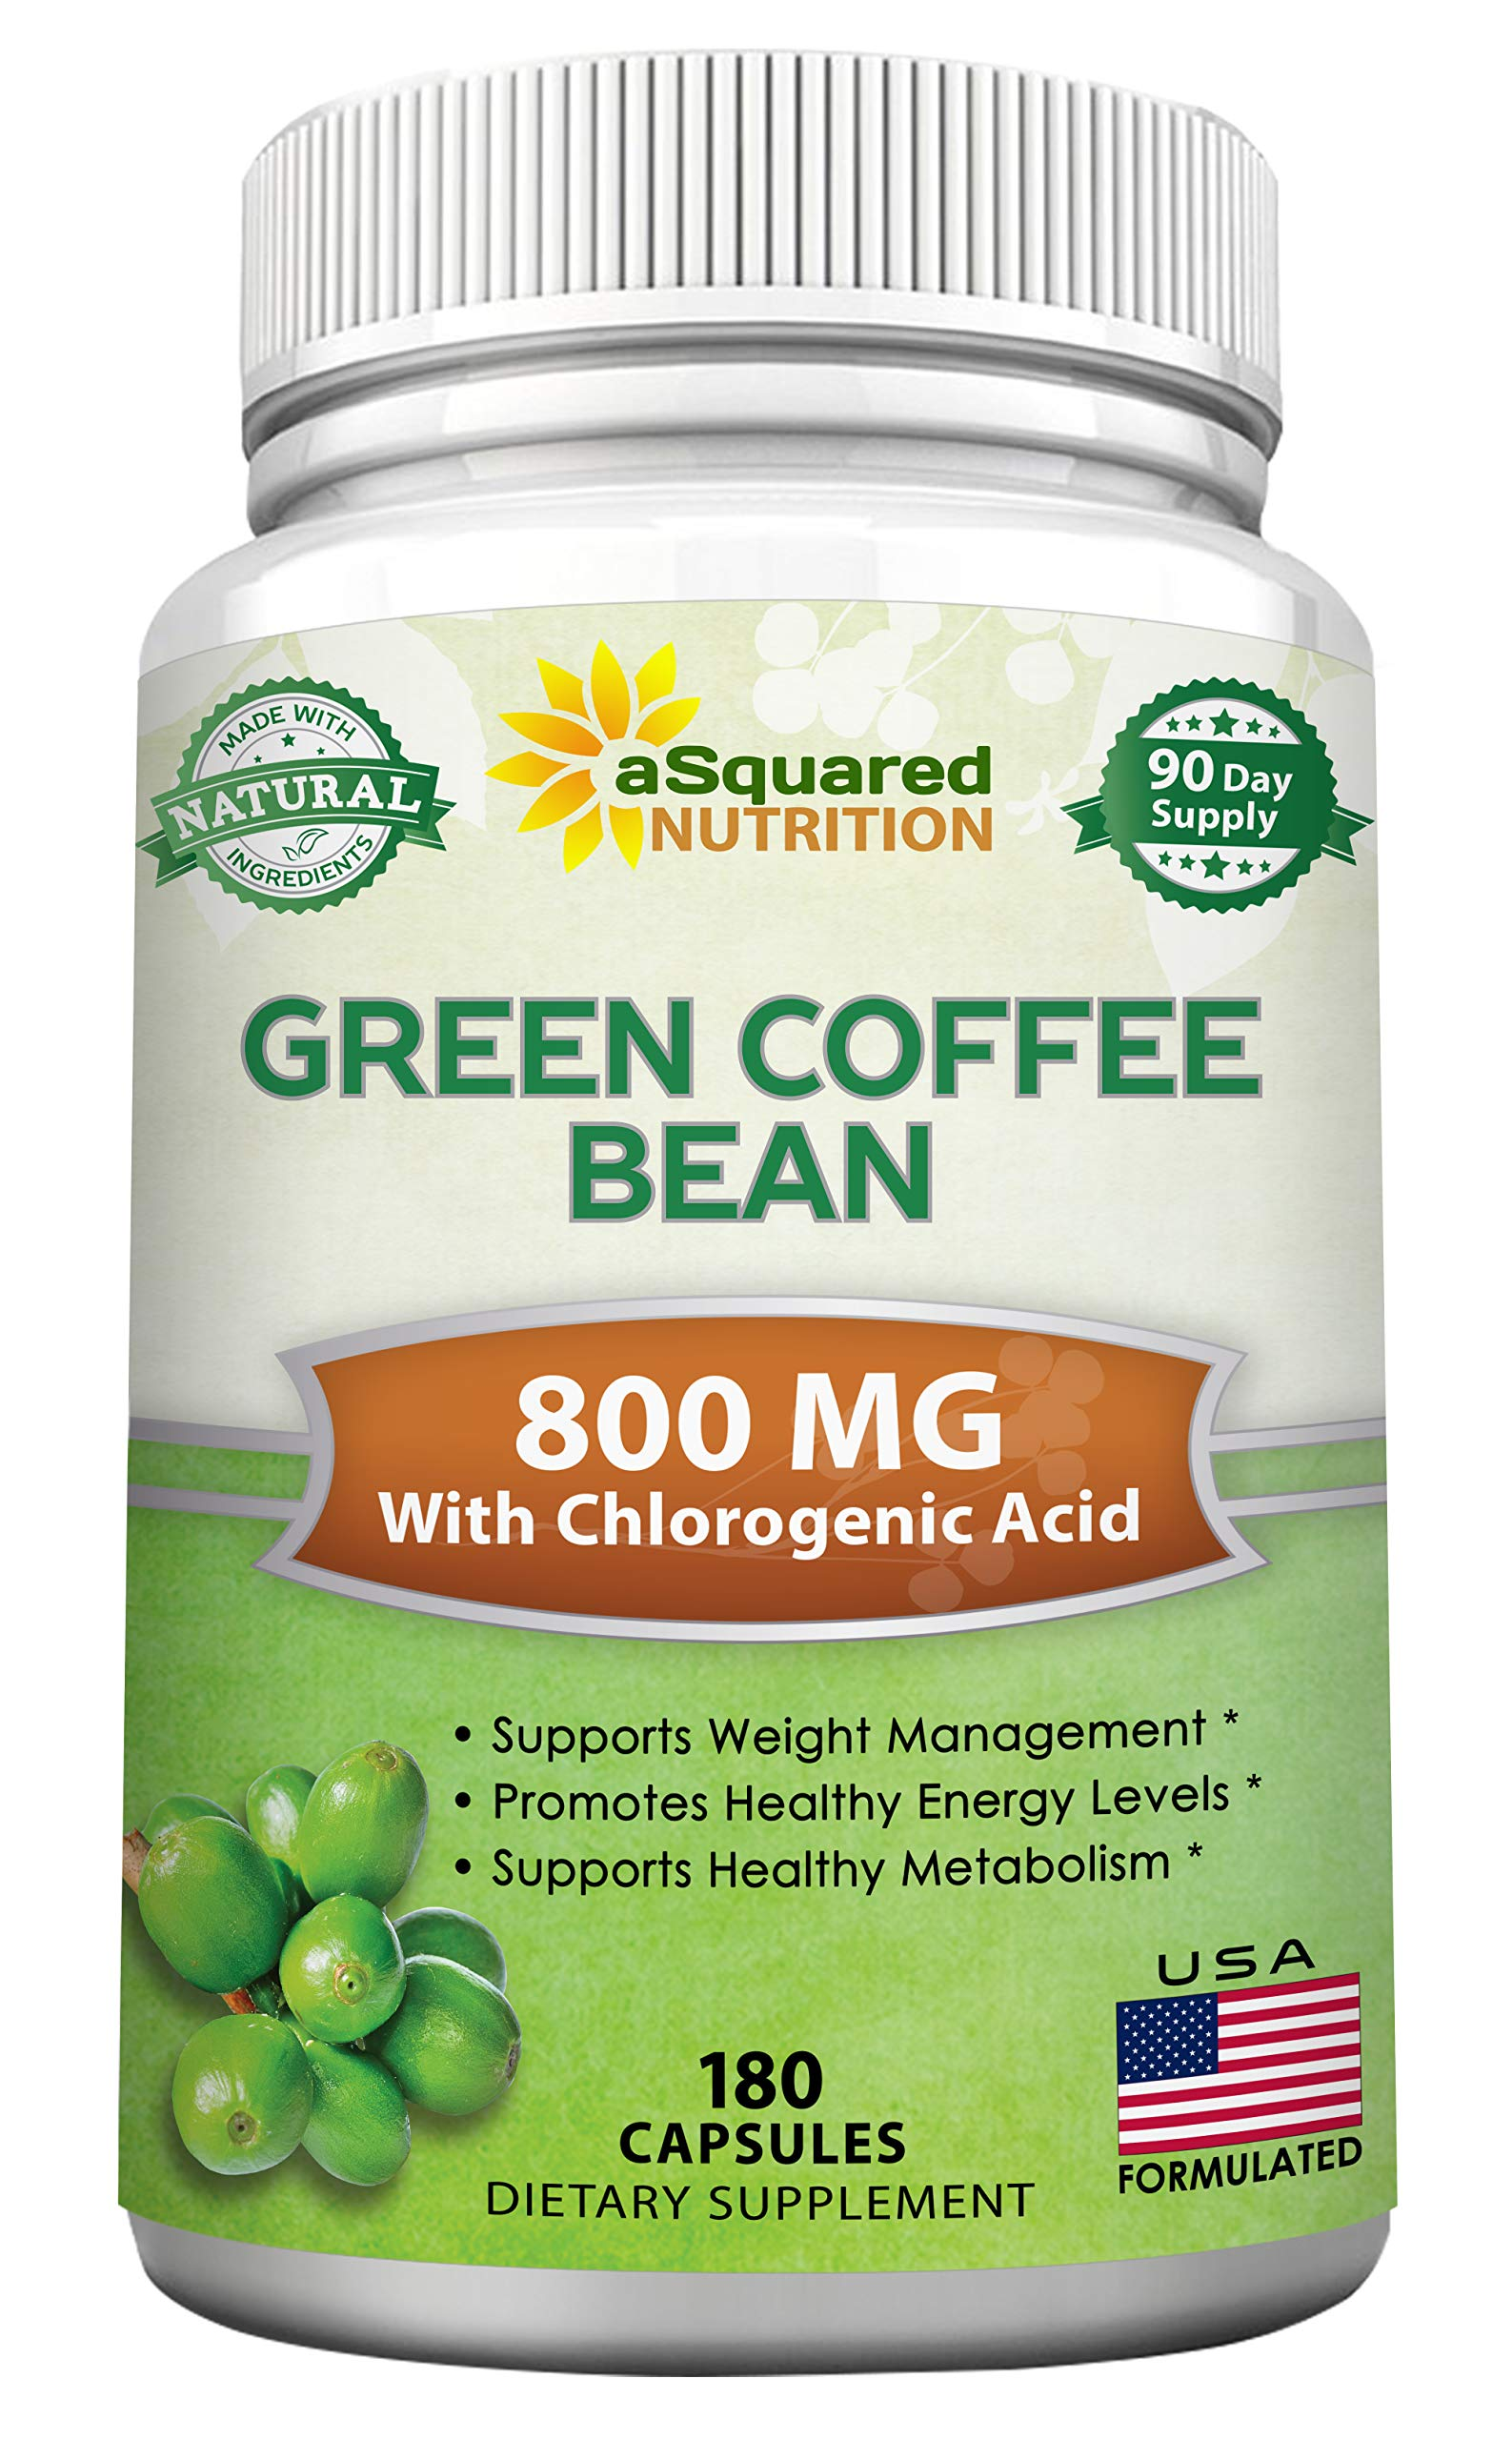 Natural Green Coffee Bean Formula - 180 Capsules - Max Strength GCA Antioxidant Cleanse for Pure Weight Loss, 800mg per Pill - with Chlorogenic Acid - 1600mg Daily Supplement, Healthy Fat Burner